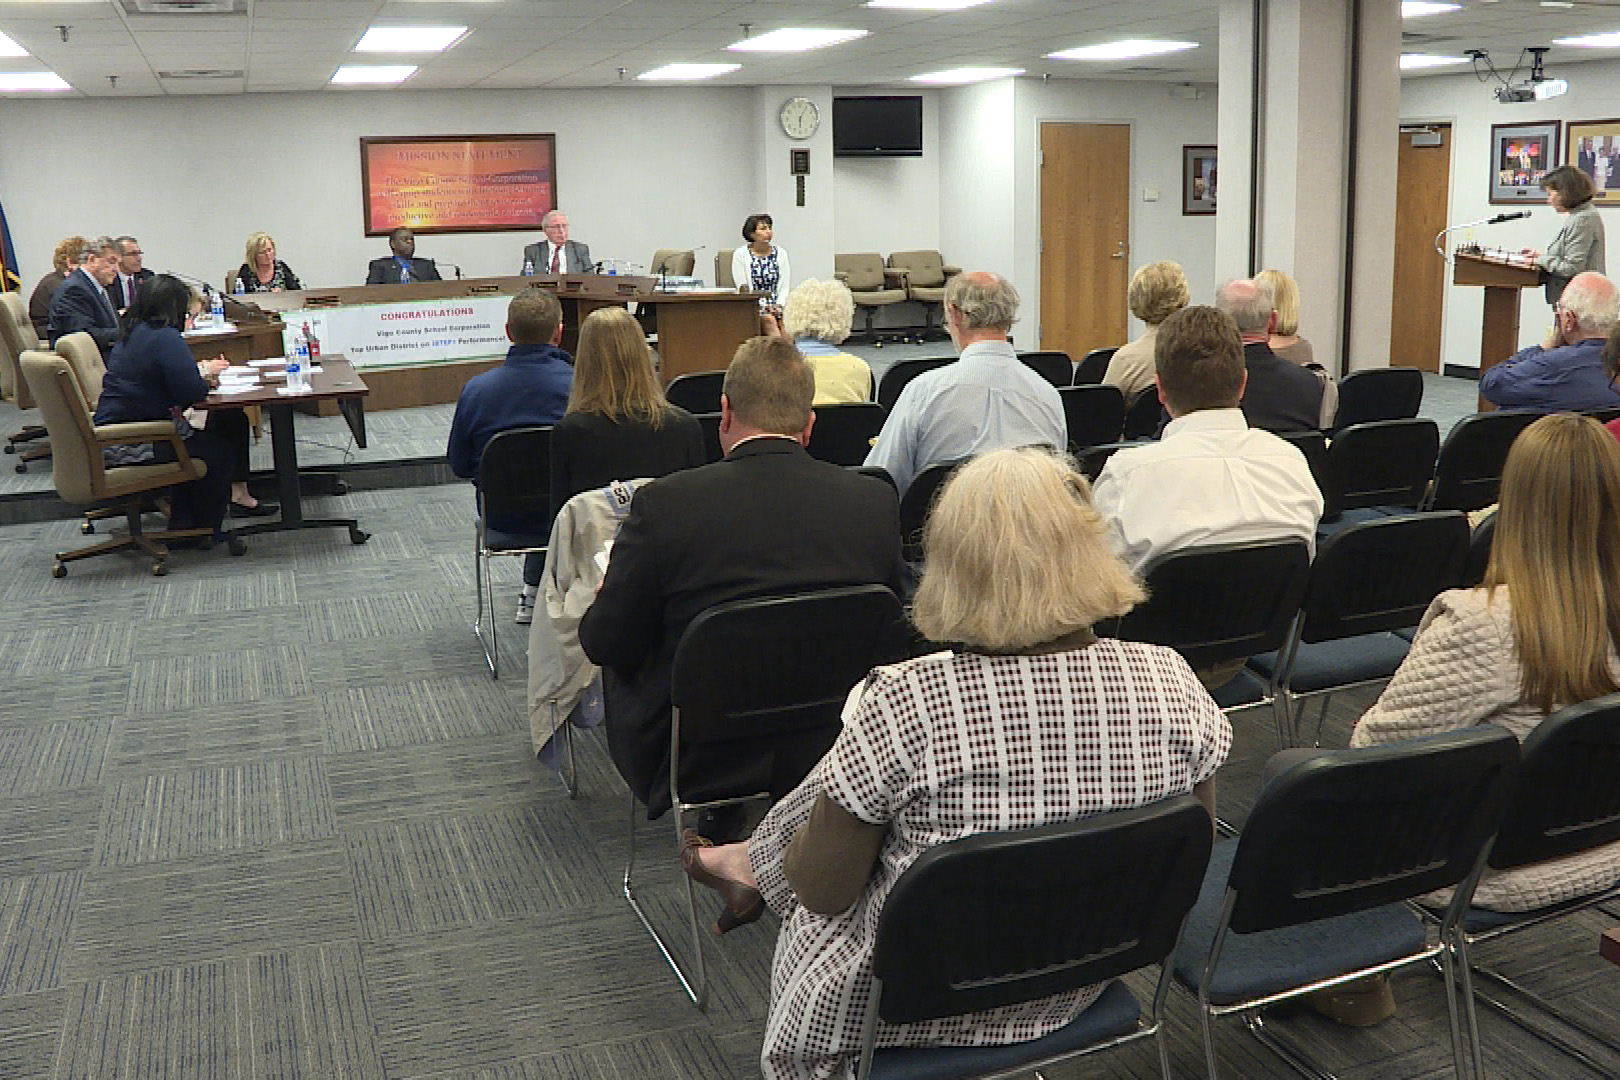 The Vigo County School Board did not take action on a proposal to bus students to their polling places at Monday night's meeting (Barbara Brosher, WFIU/WTIU News).